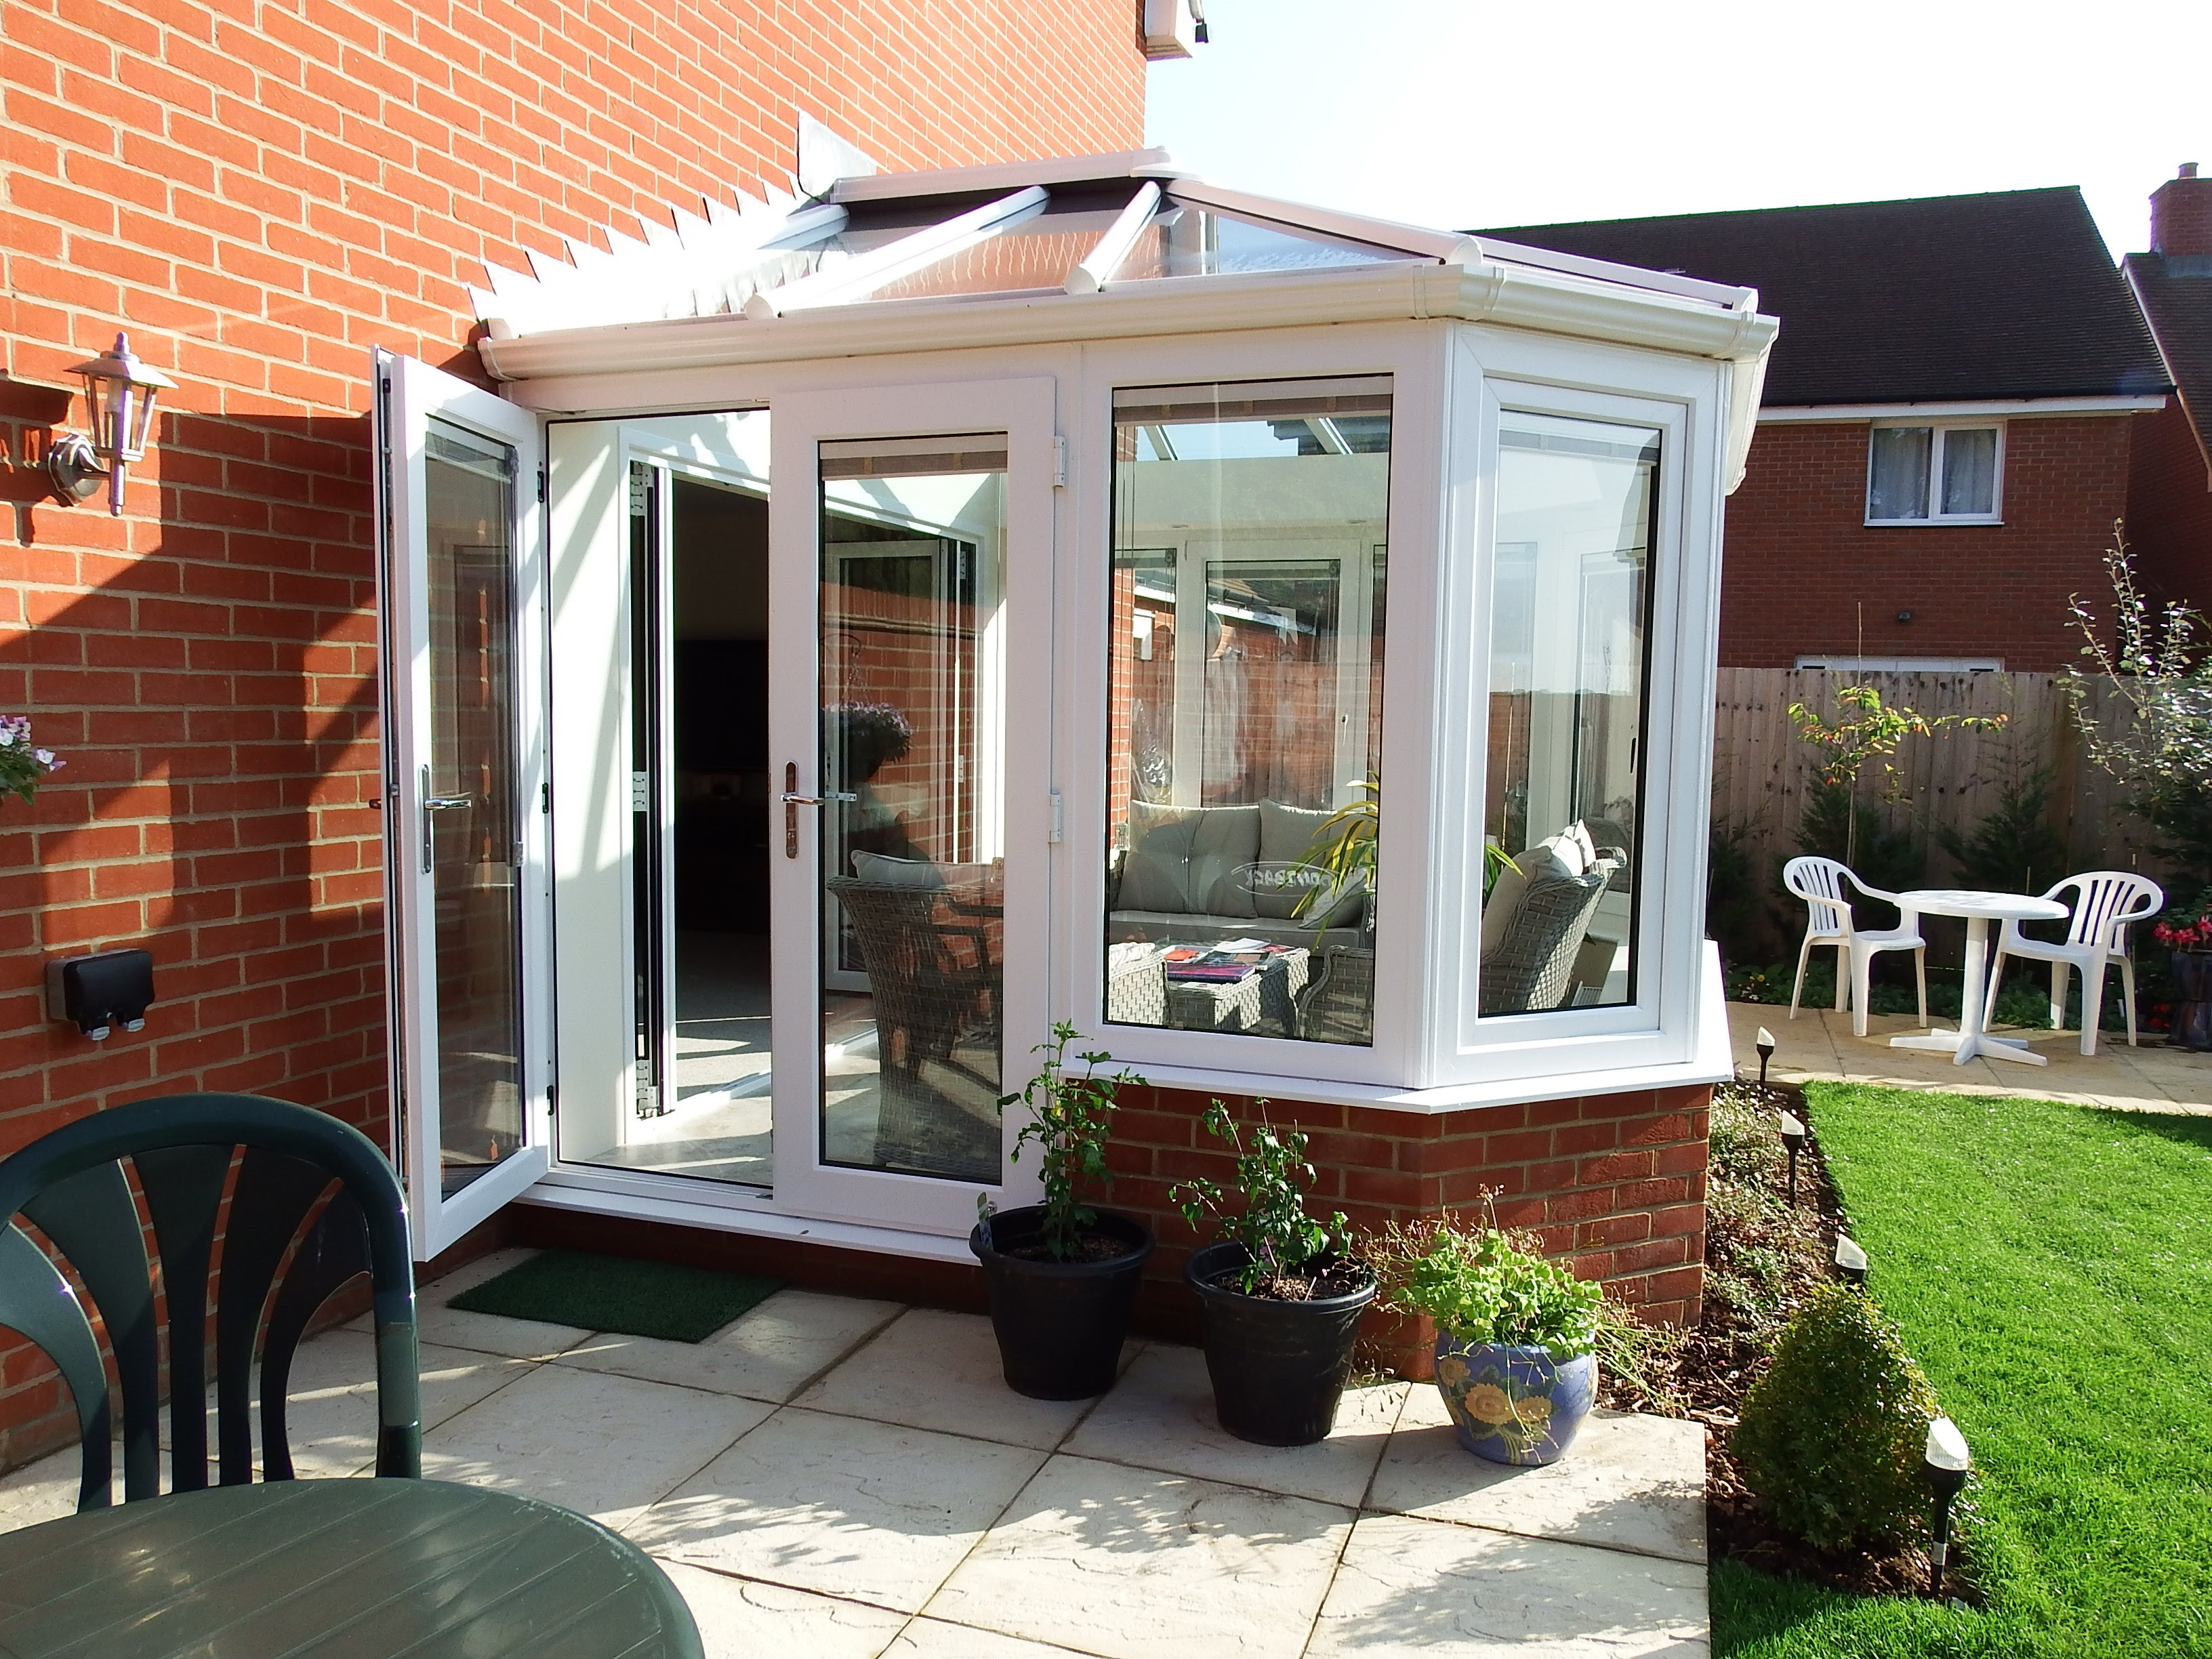 Side image of a Livin room conservatory with white french doors and windows.